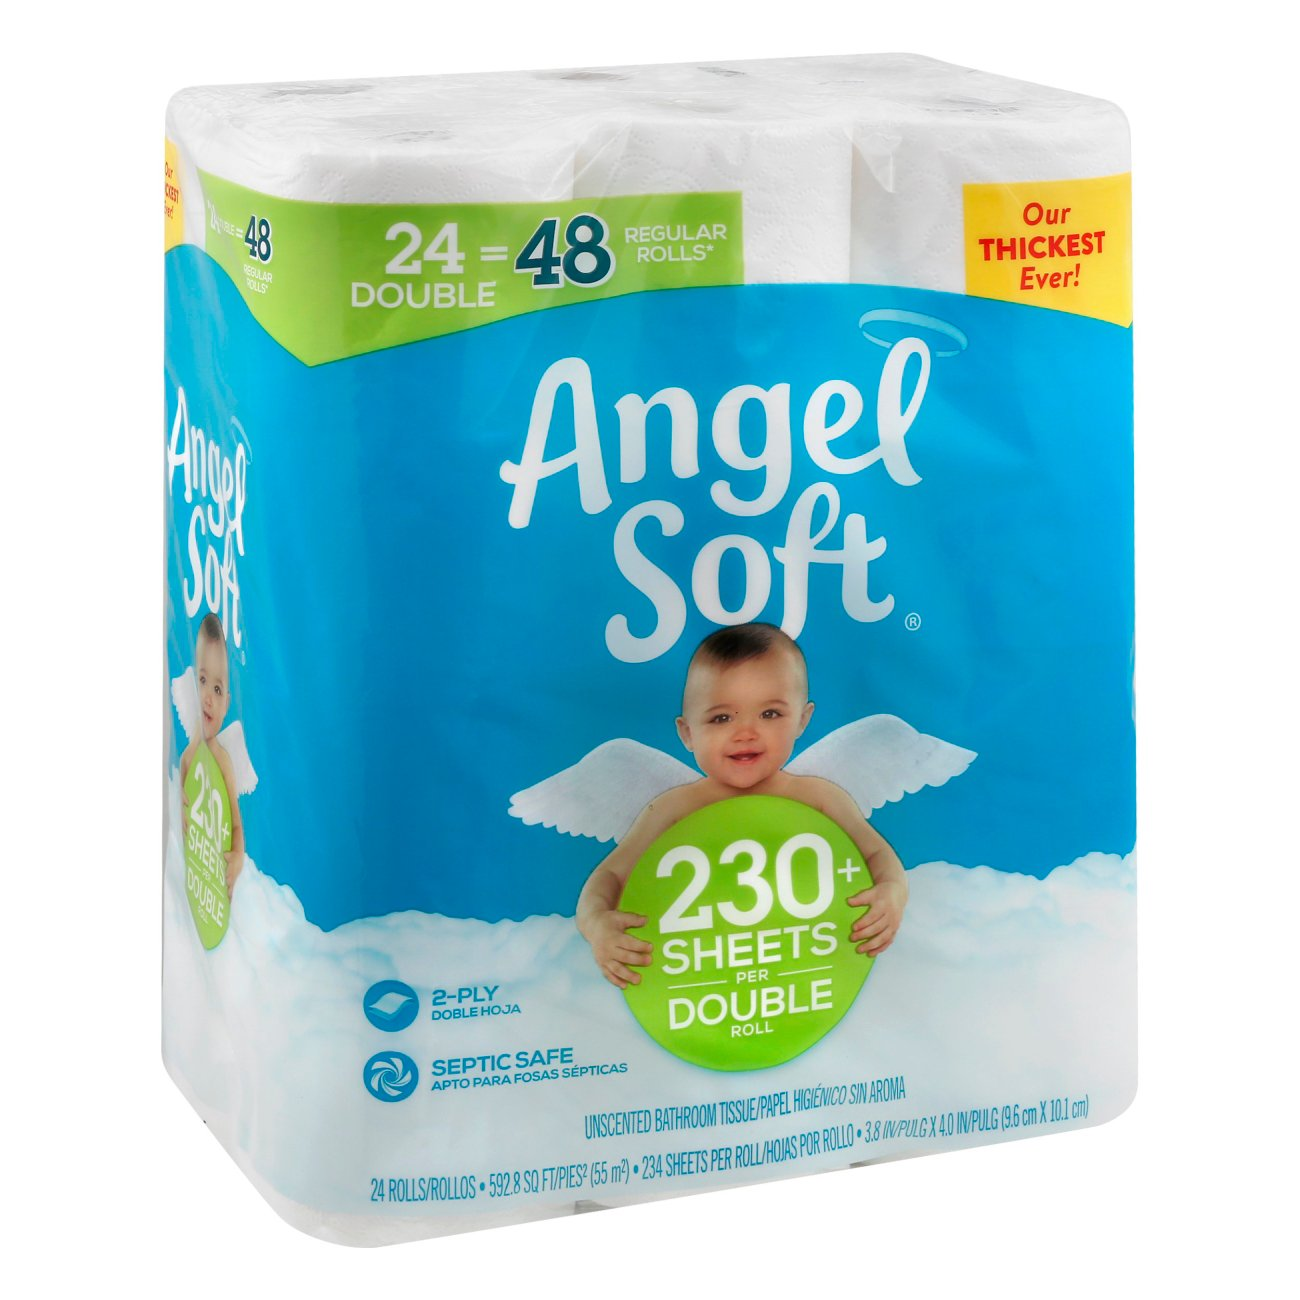 Shop Toilet Paper   Grocery Stockup at HEB